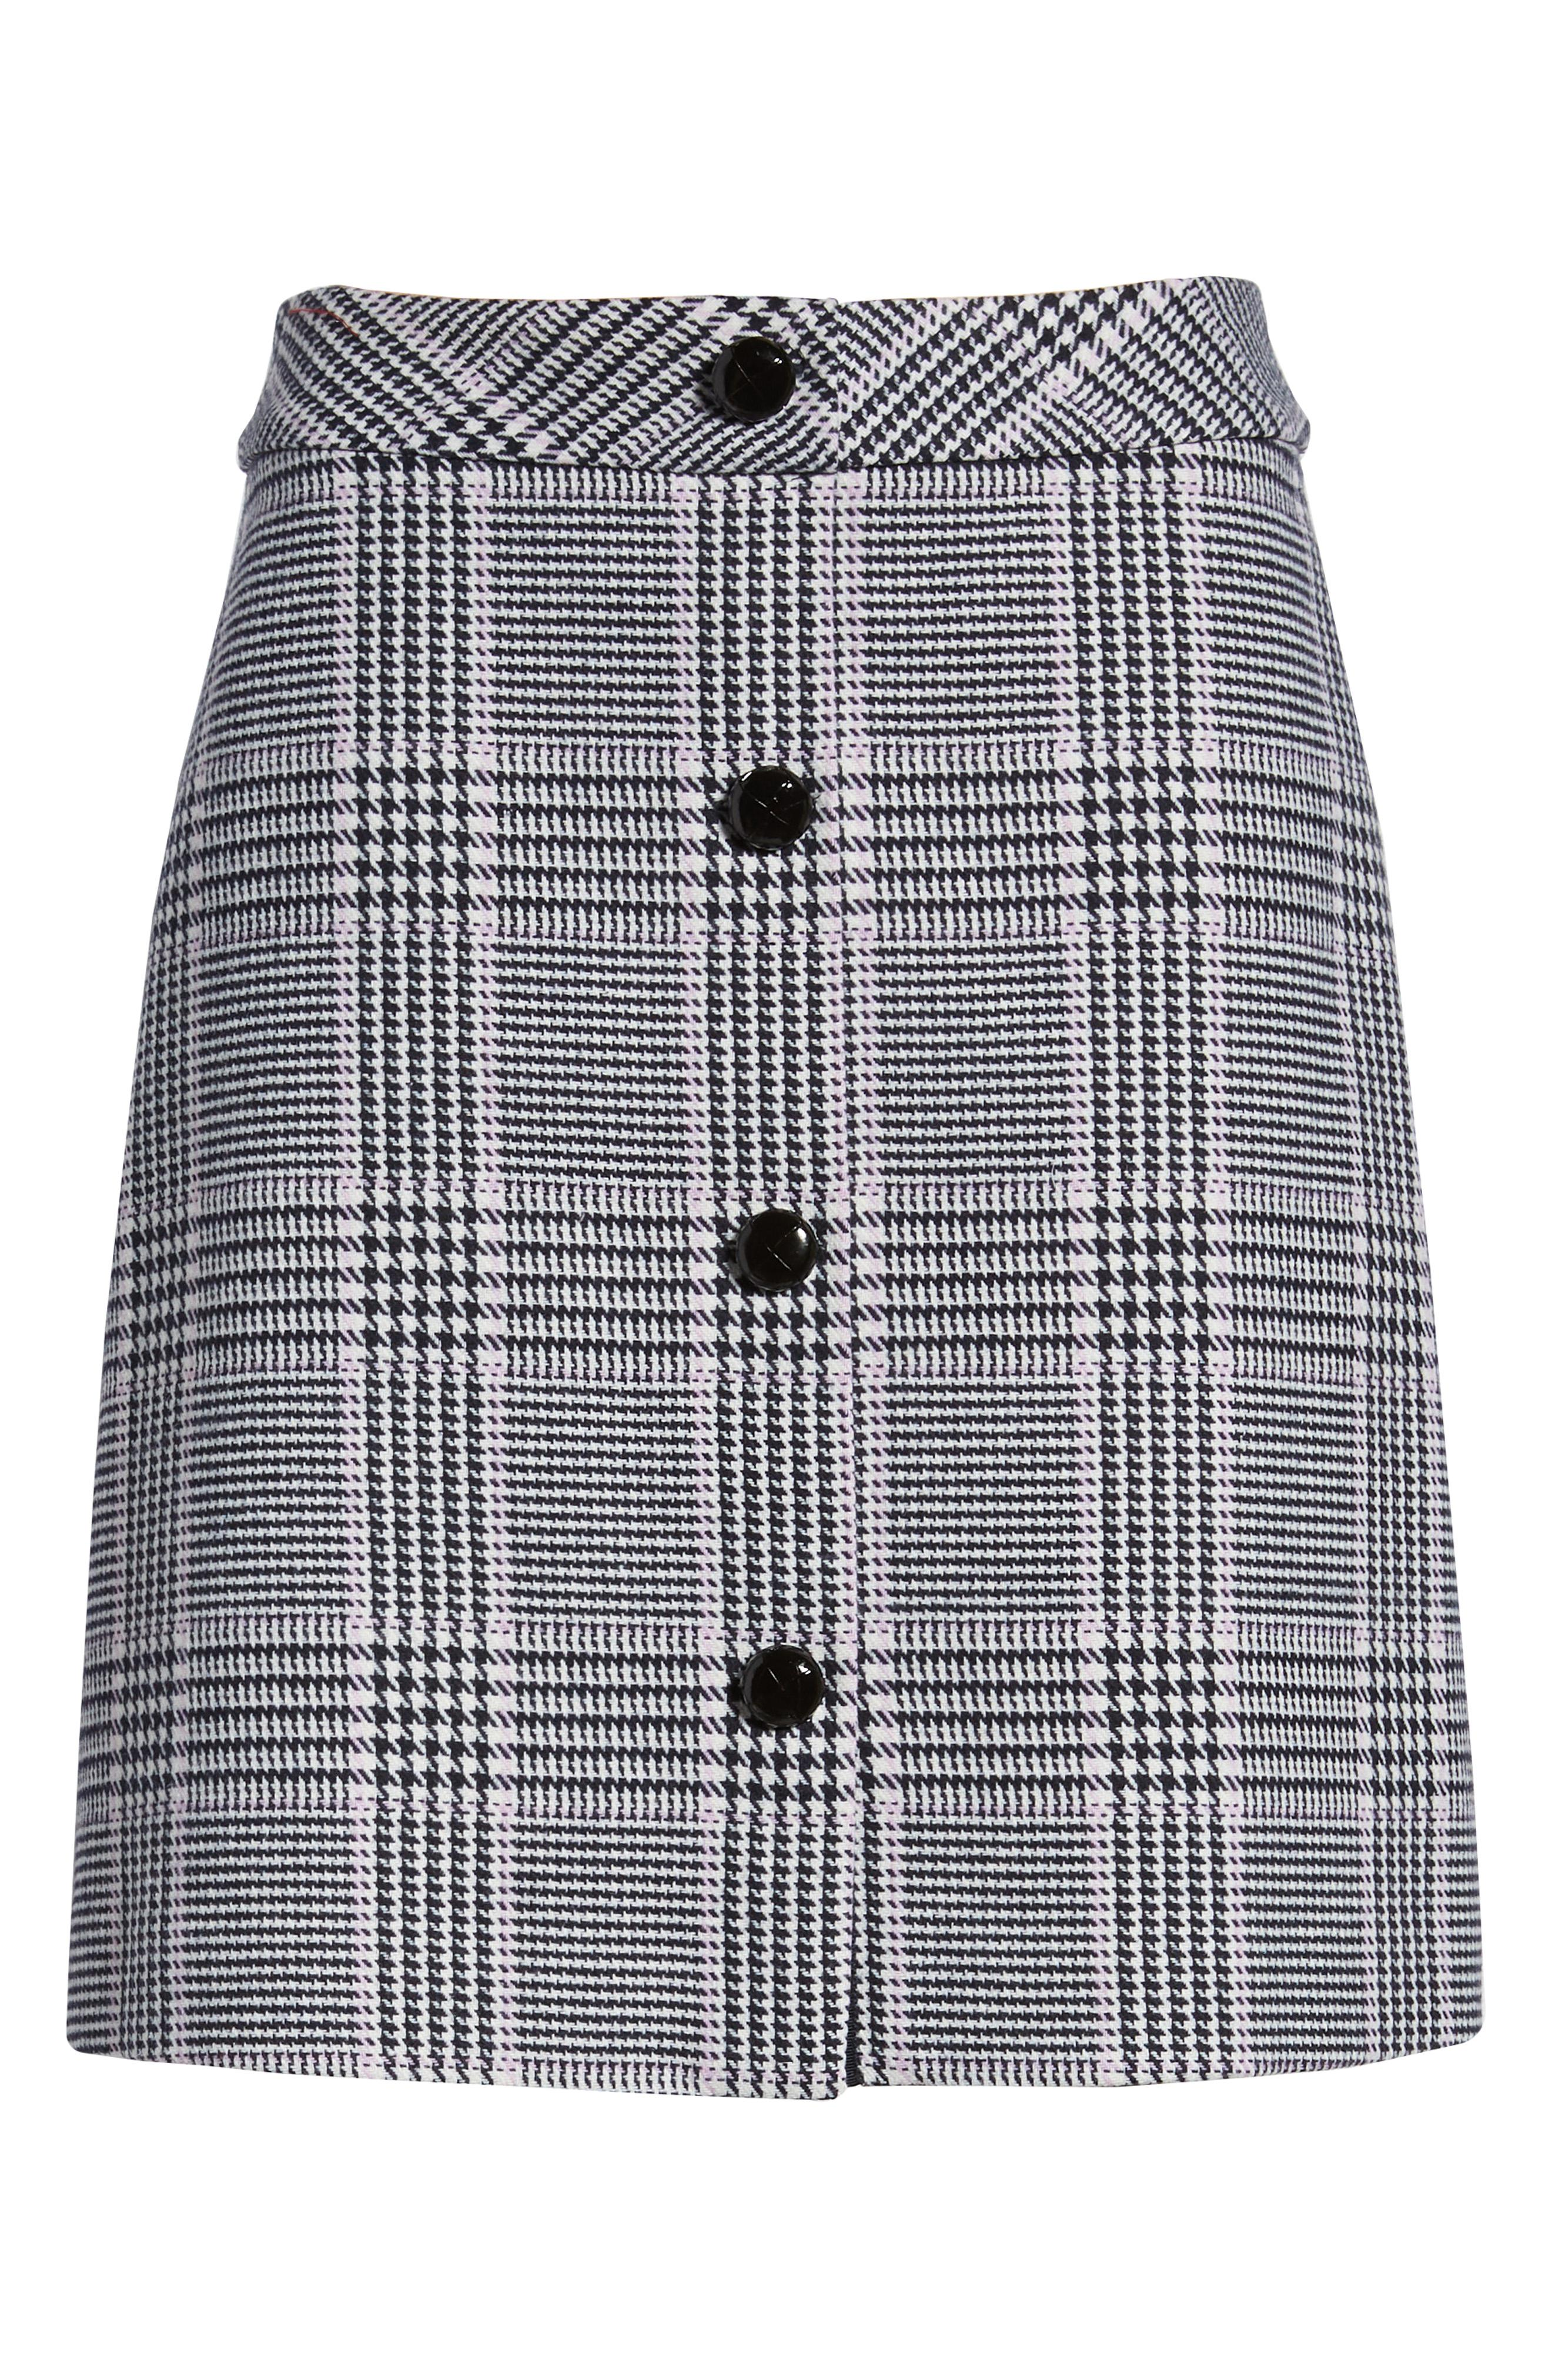 1901 Button Front Houndstooth Skirt -- Sale: $49.90 / After Sale: $79{ }(Image: Courtesy Nordstrom)